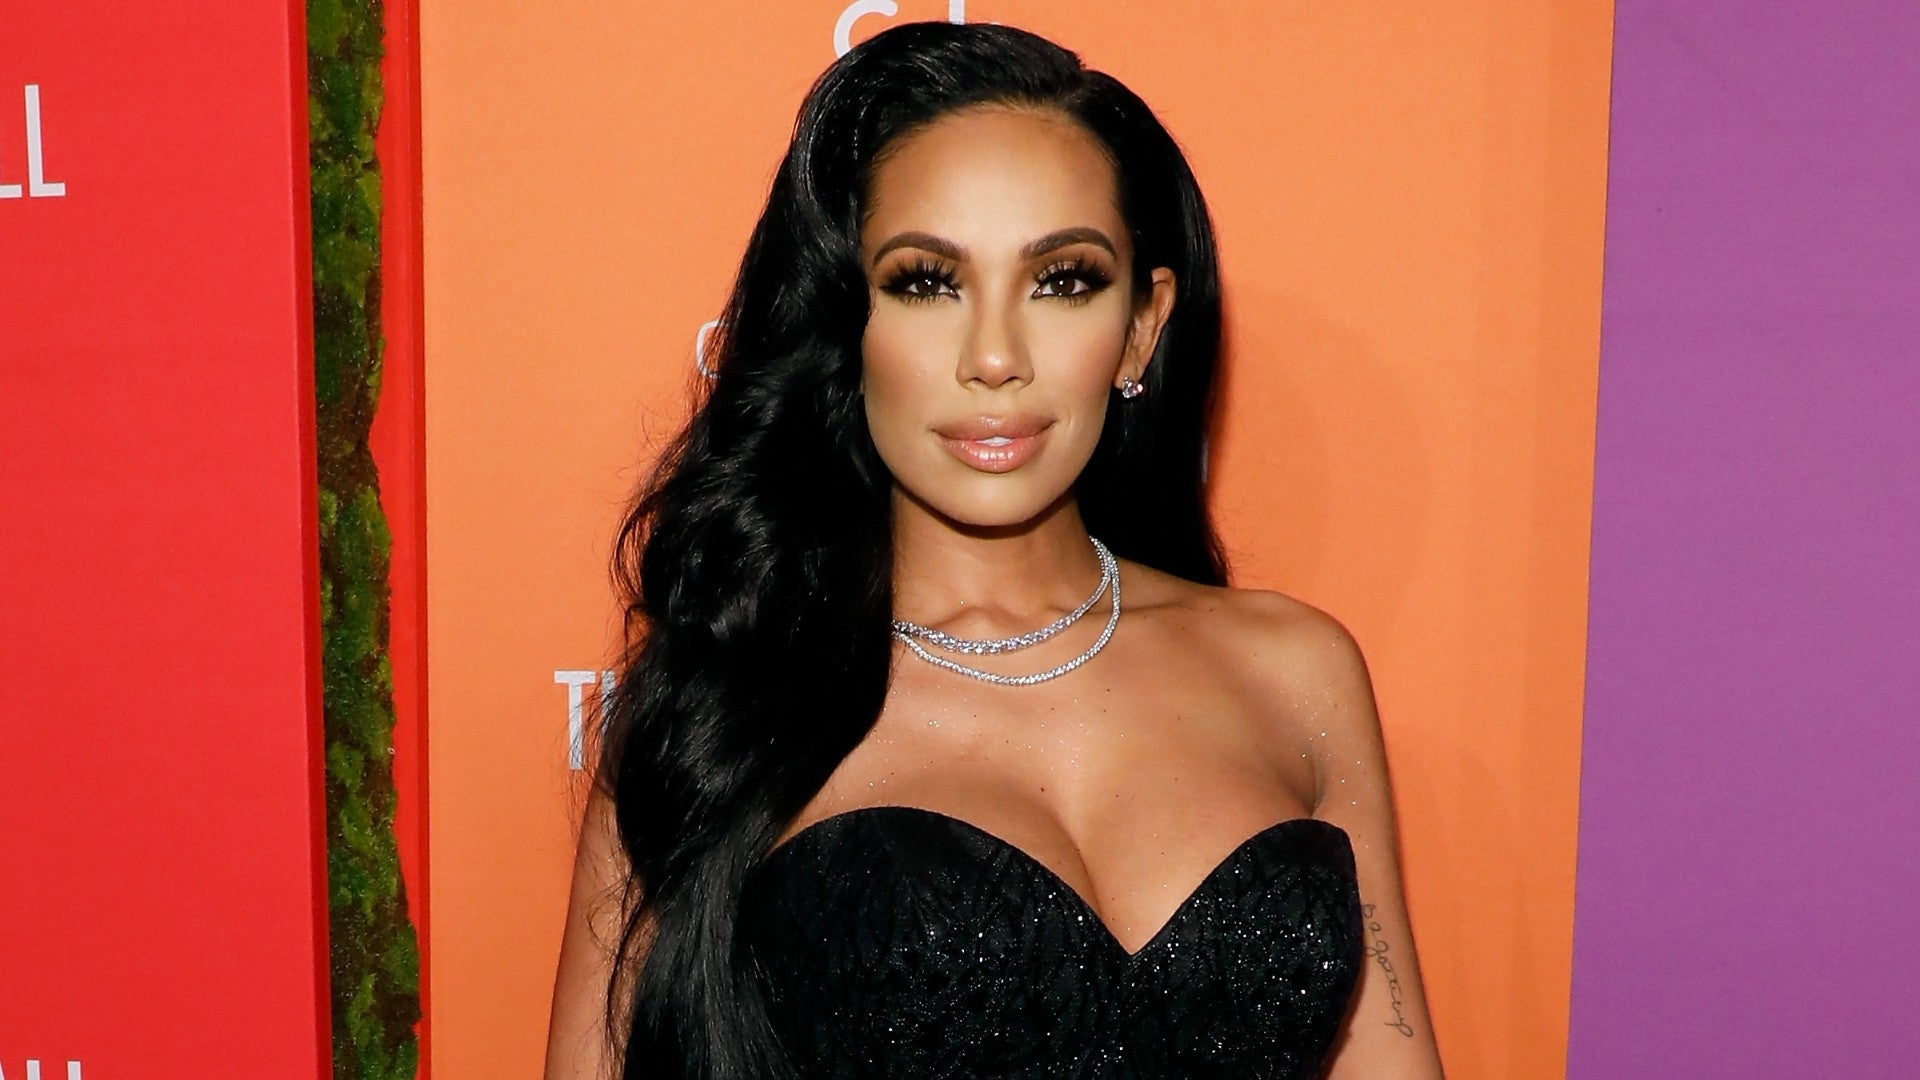 Erica Mena Announces A Big Giveaway On Her Social Media Account – See The Video That Has Some Fans Criticizing Her